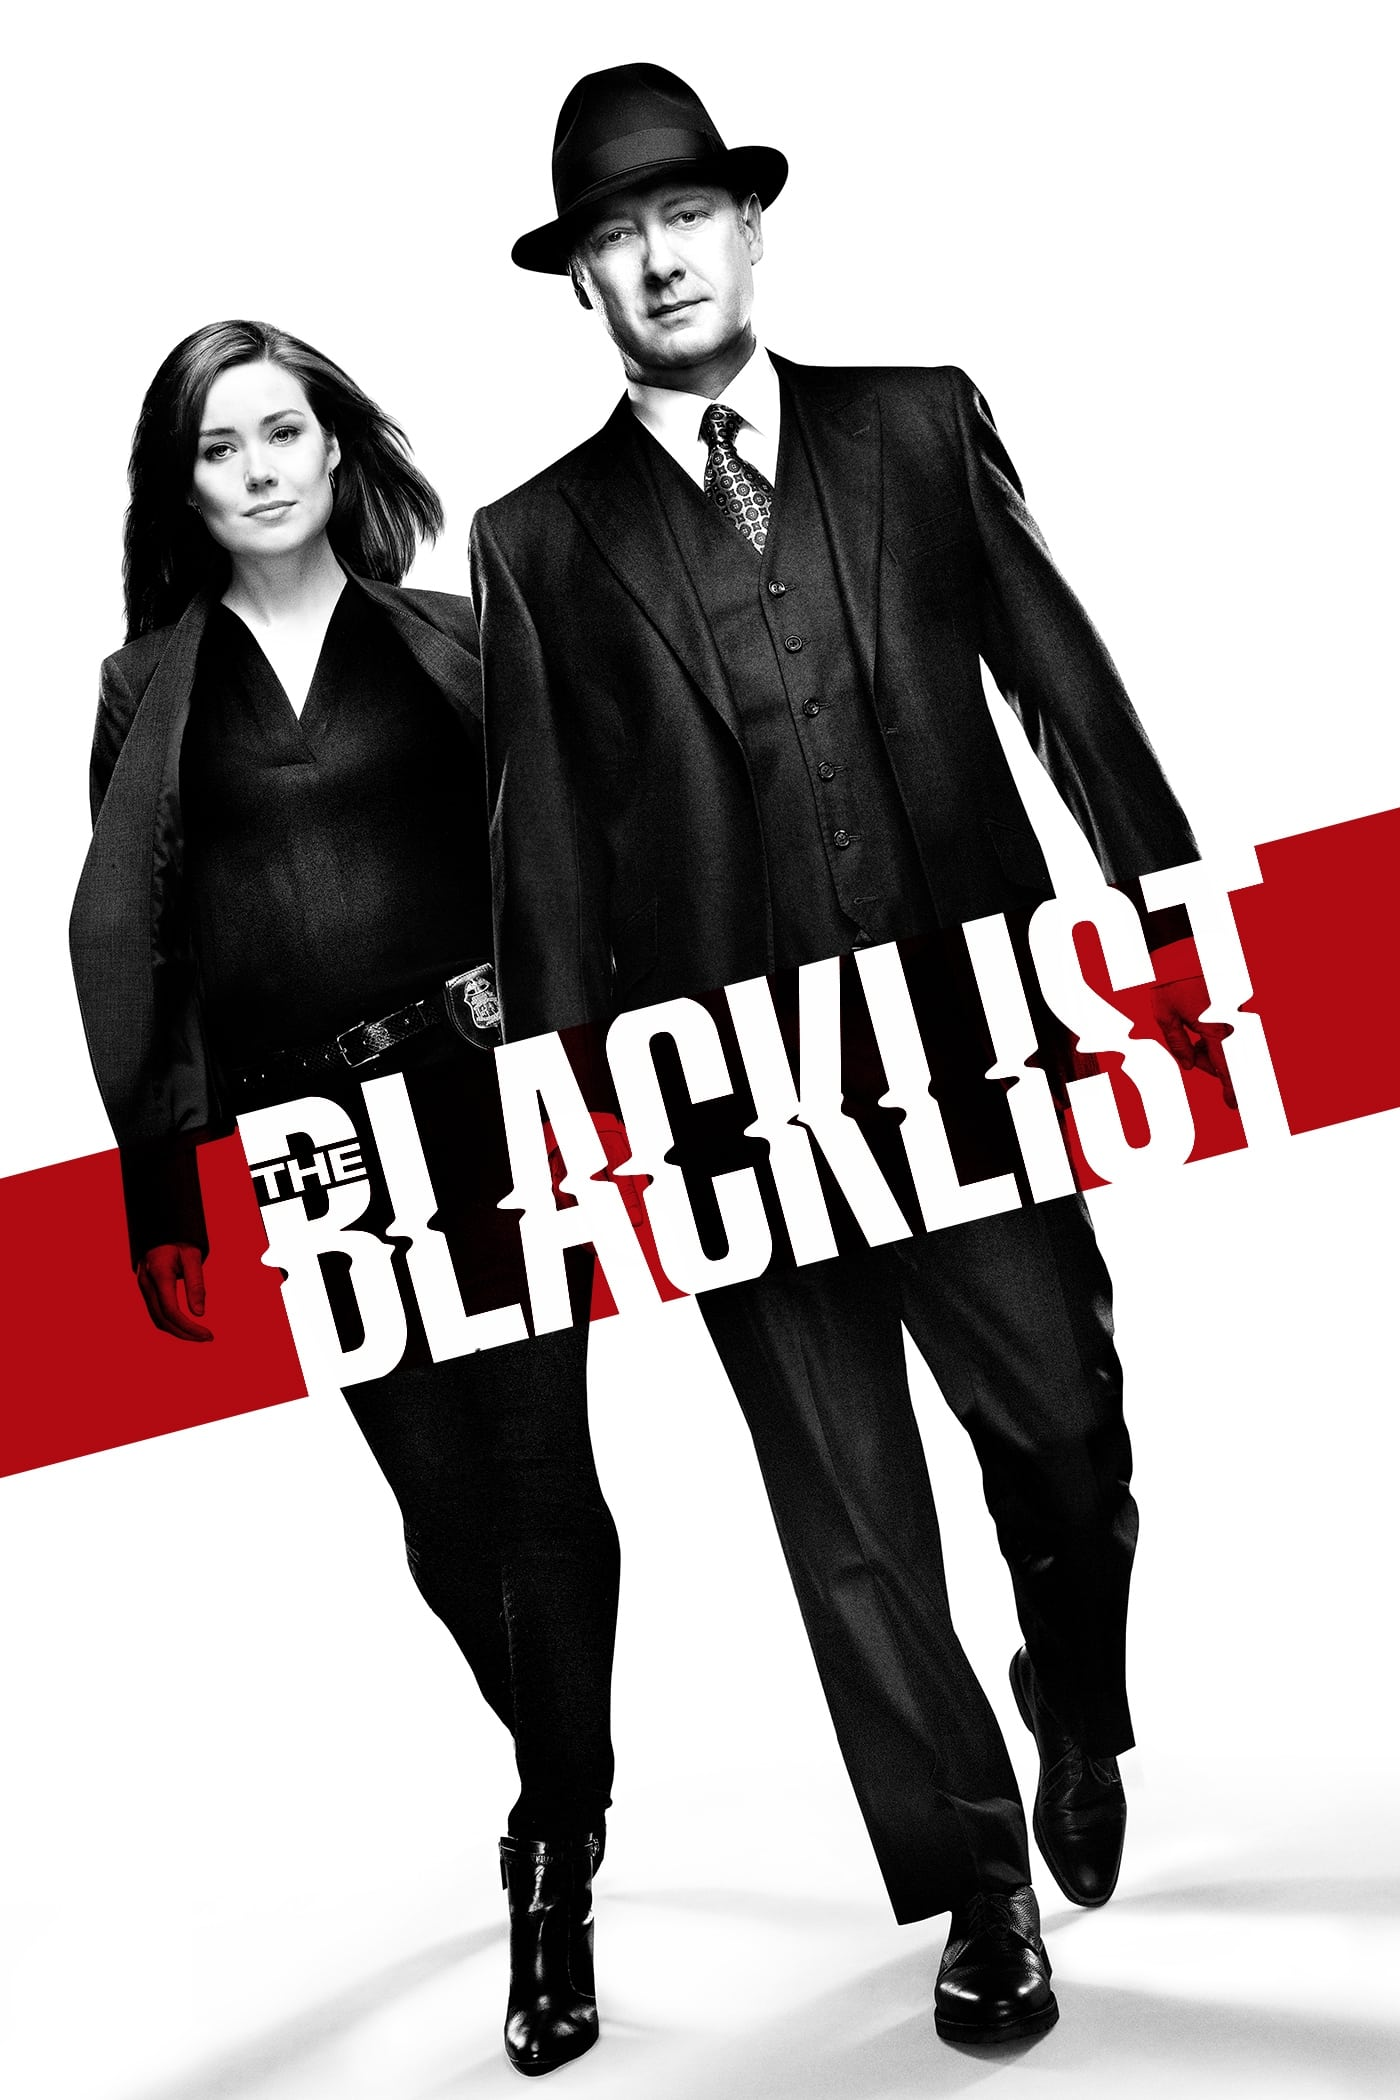 serie blacklist 2013 en streaming vf complet filmstreaming hd com. Black Bedroom Furniture Sets. Home Design Ideas